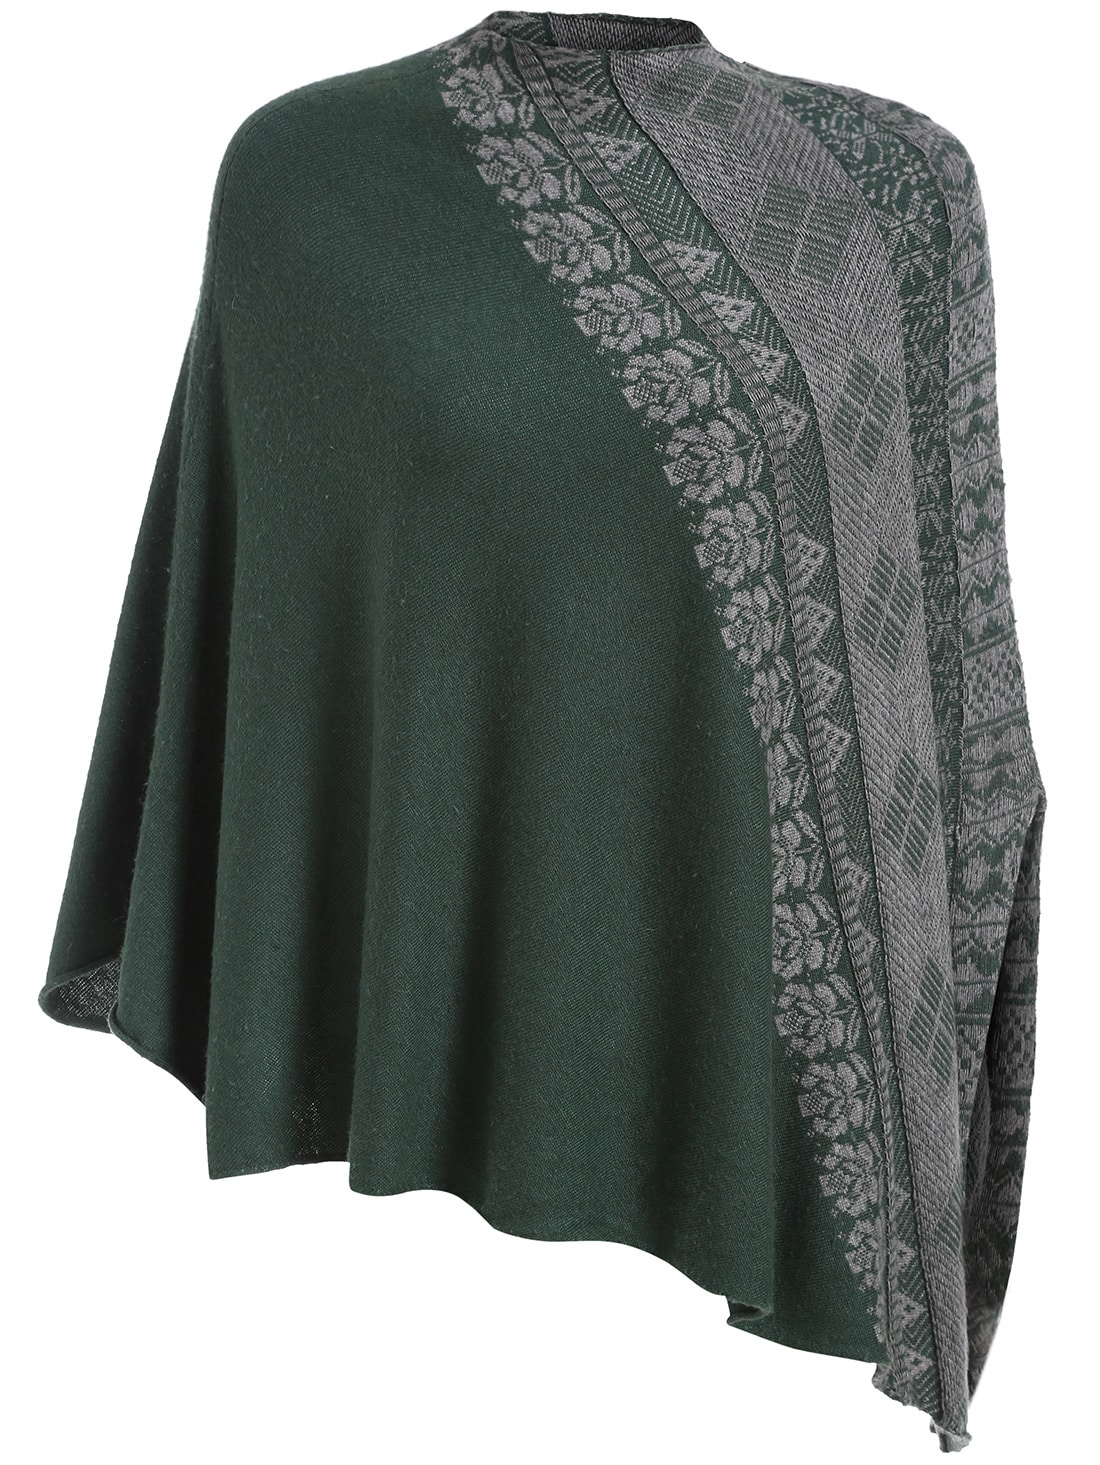 Green Mock Neck Tribal Embroidered Cape -SheIn(Sheinside)